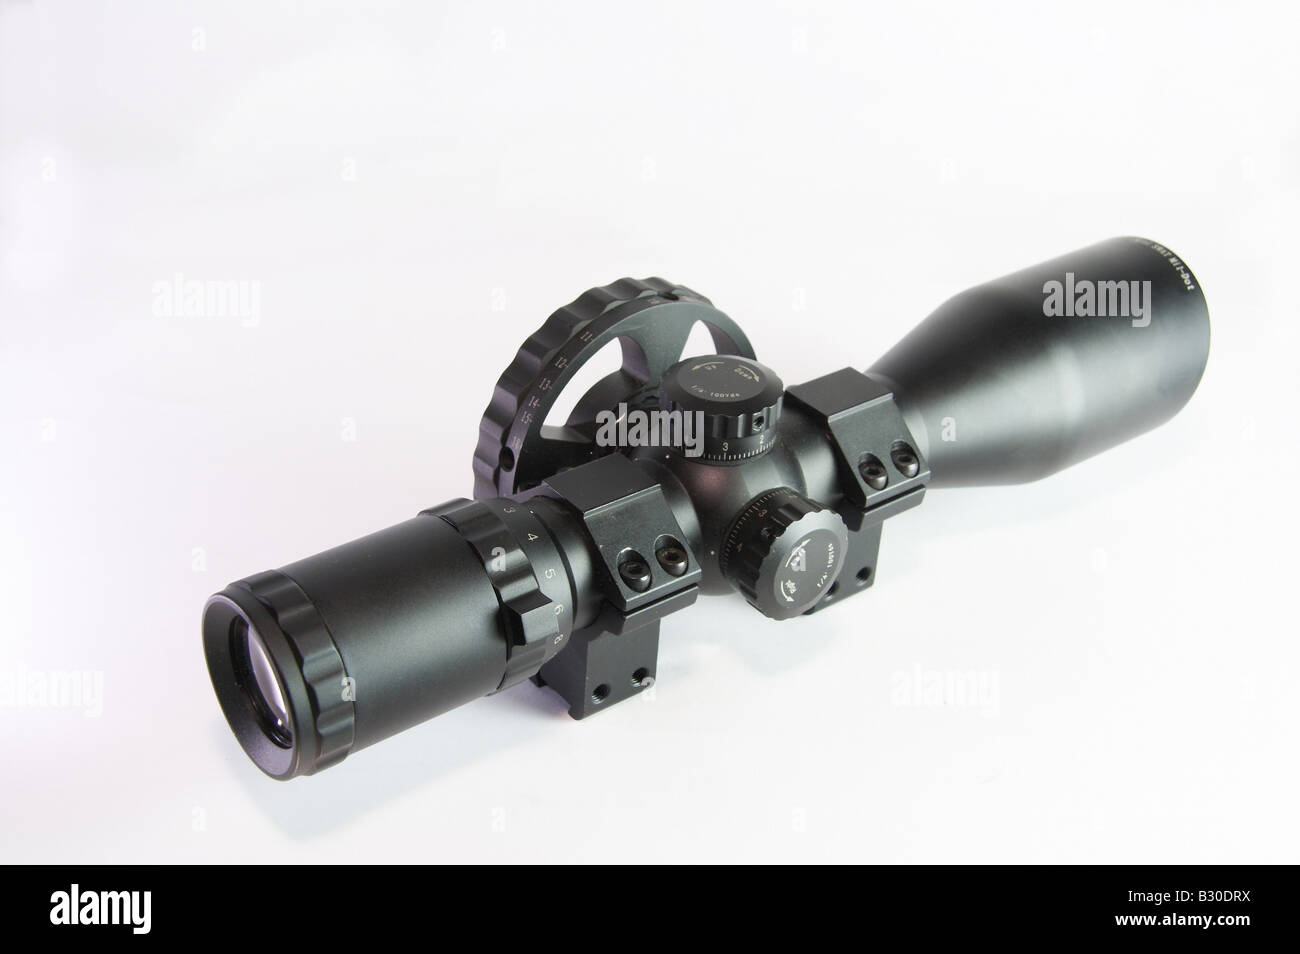 Optical sight - Stock Image